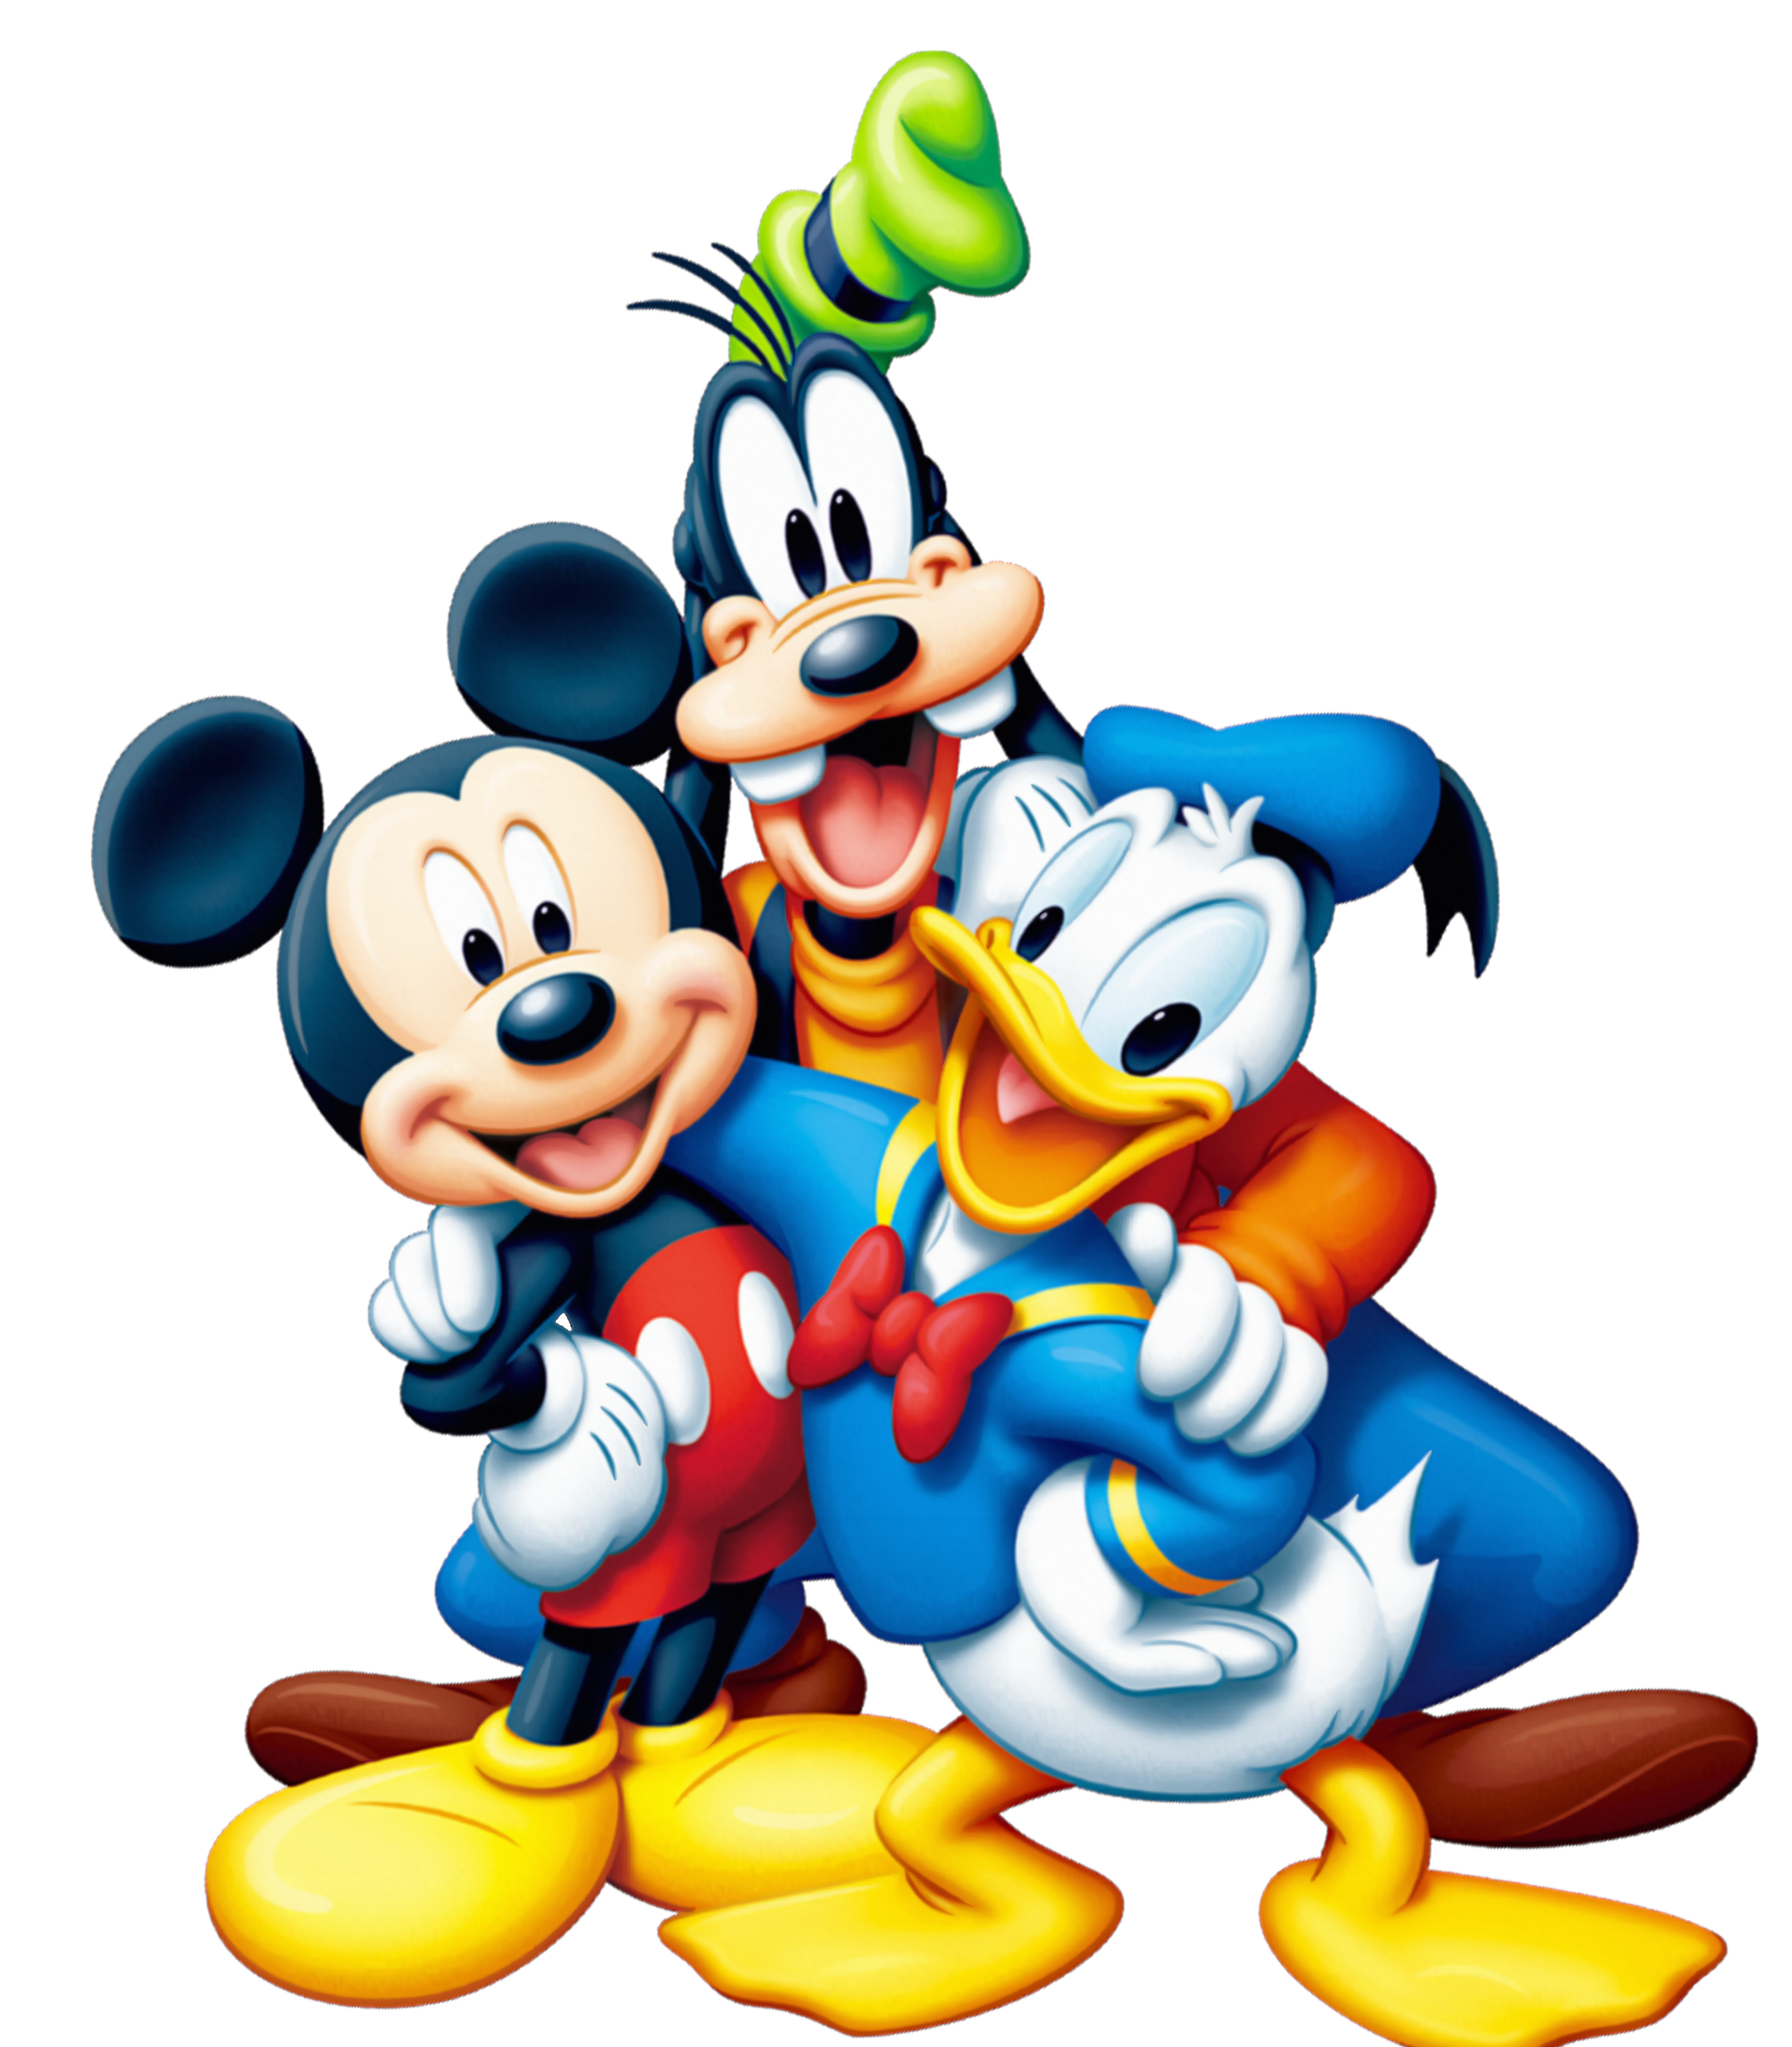 Download Mickey Mouse - Download Mickey And Friends Minnie Goofy Mouse HQ PNG Image in ...